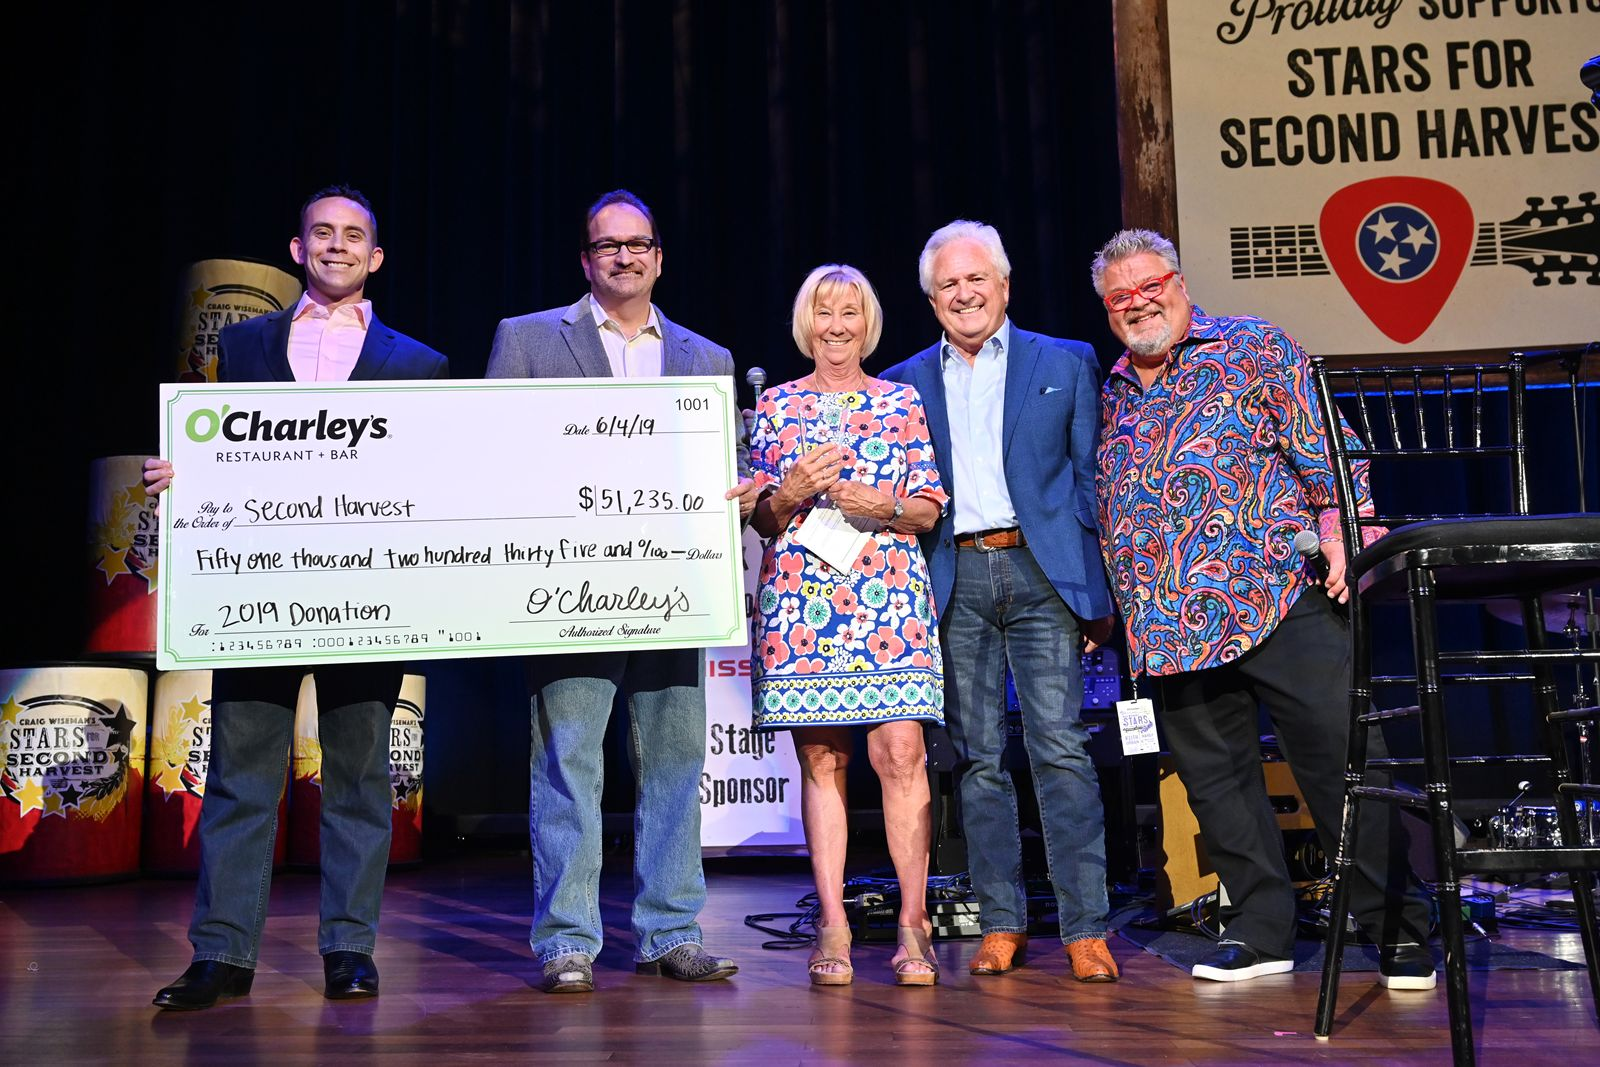 Pictured: O'Charley's Regional Vice President Ian Geralds, O'Charley's Senior Vice President of Operations Chuck Westphal, Second Harvest President & CEO Jaynee Day, O'Charley's Chief Concept Officer of Family Dining Bob Langford and Craig Wiseman.